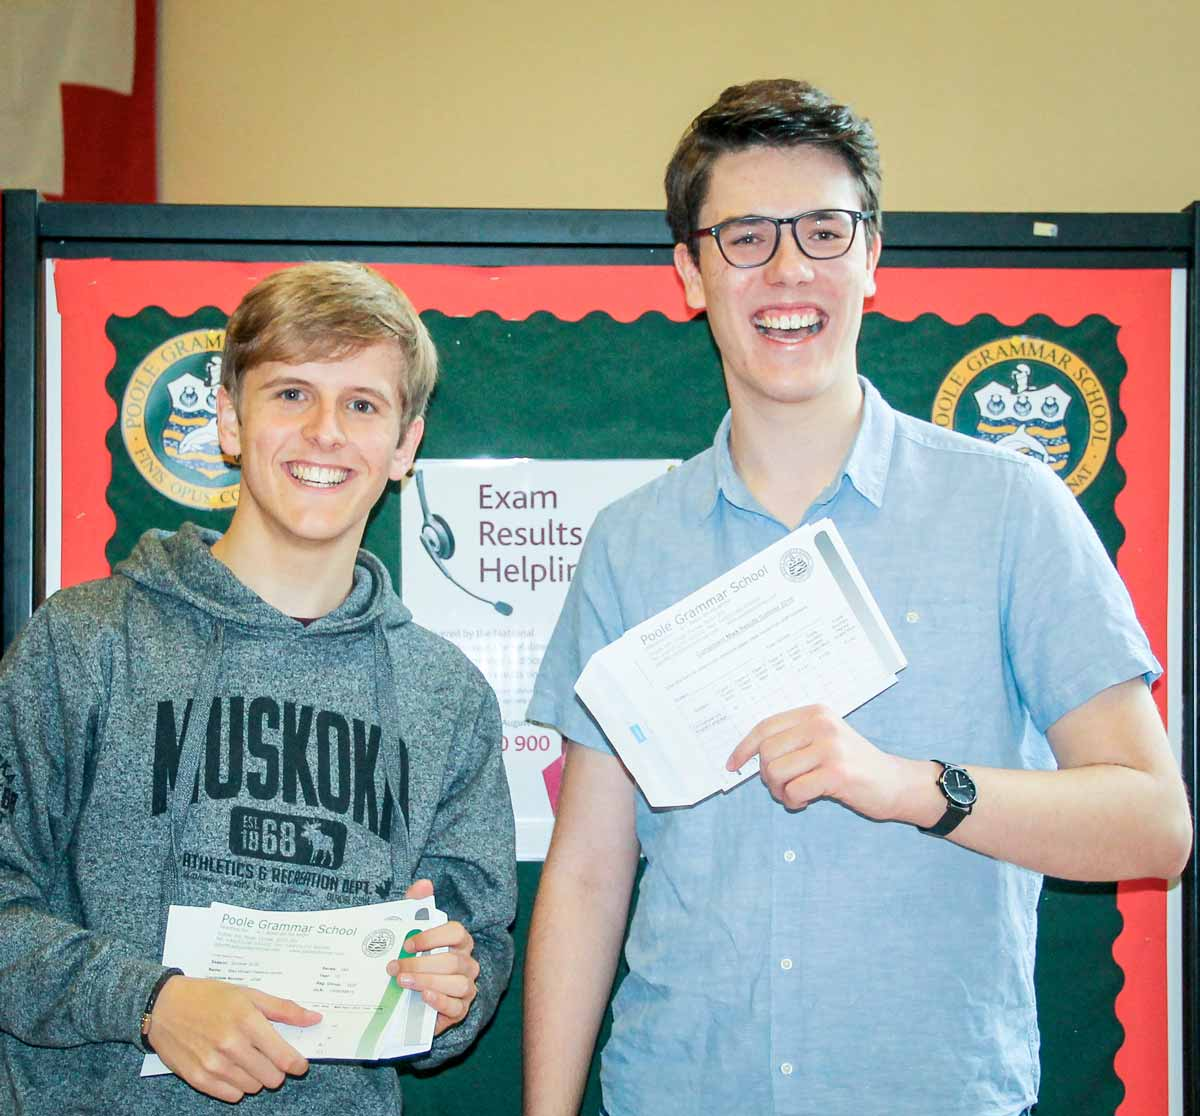 Poole Grammar School A Level results